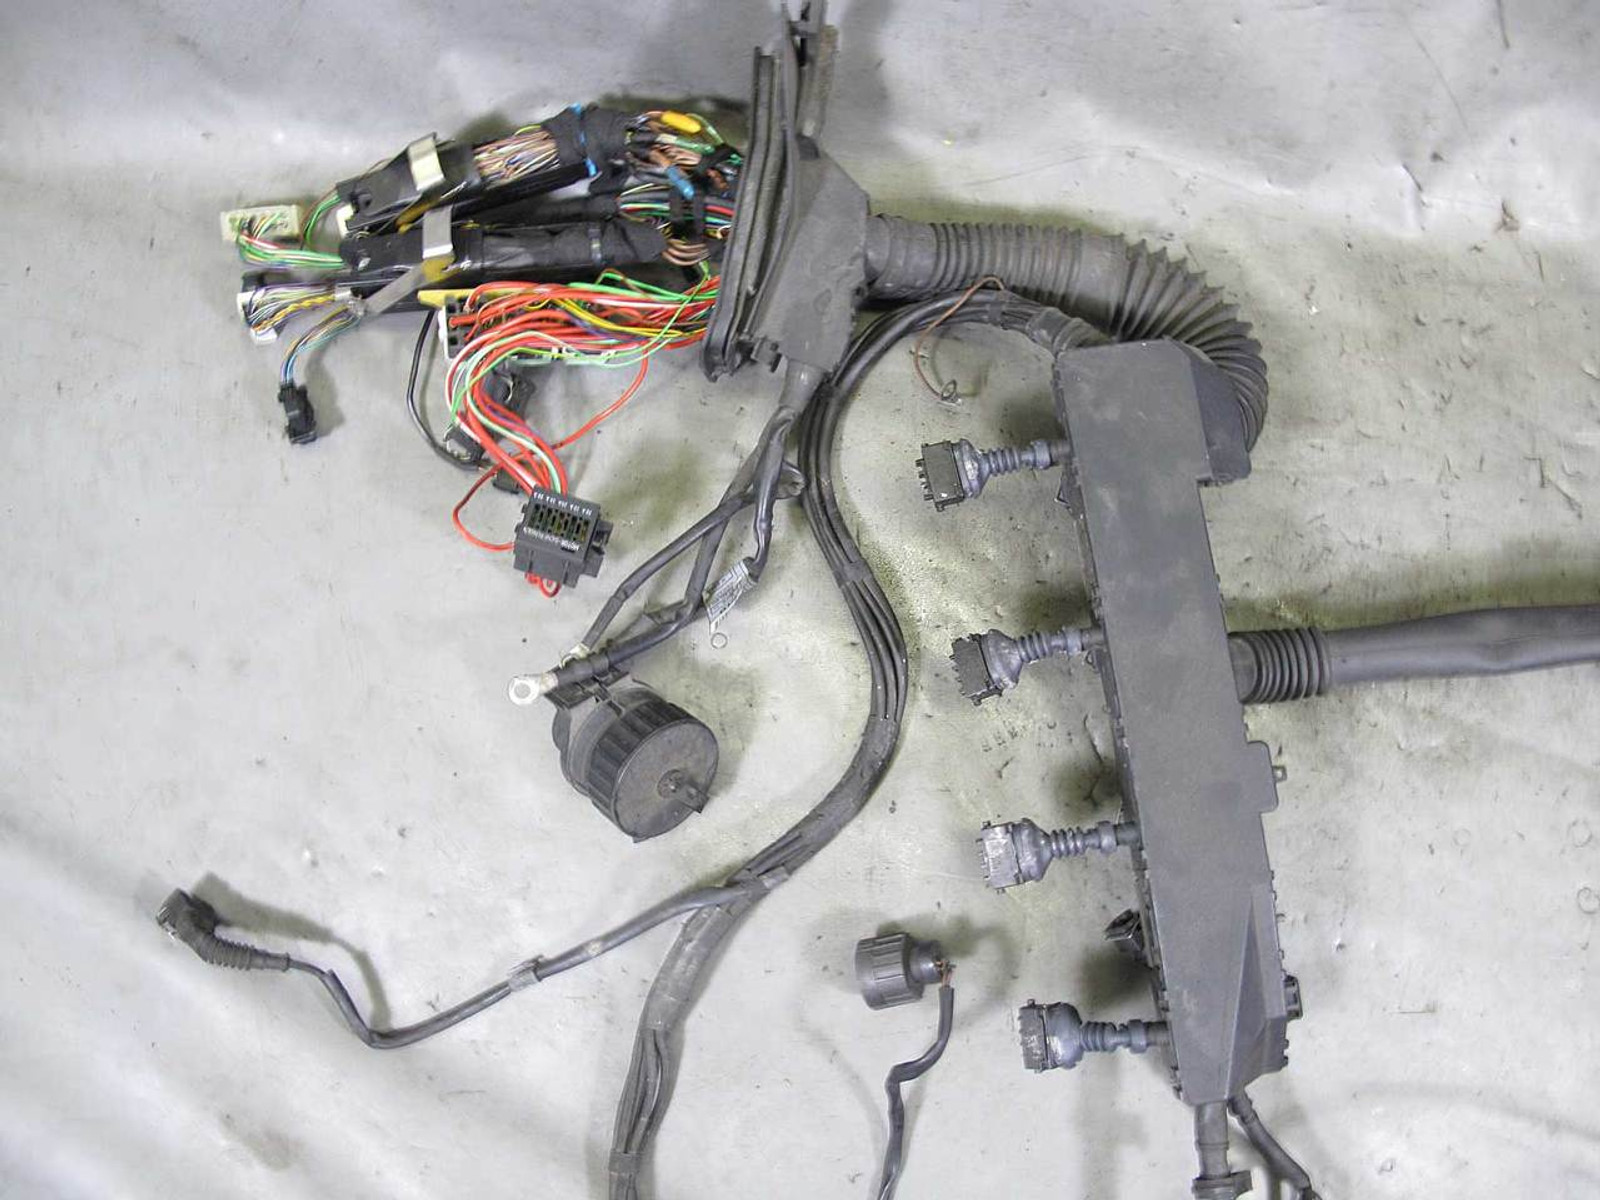 ... E38 740i M62B44 V8 Engine Wiring Harness Complete USED OEM img ·  1996-1997 ...